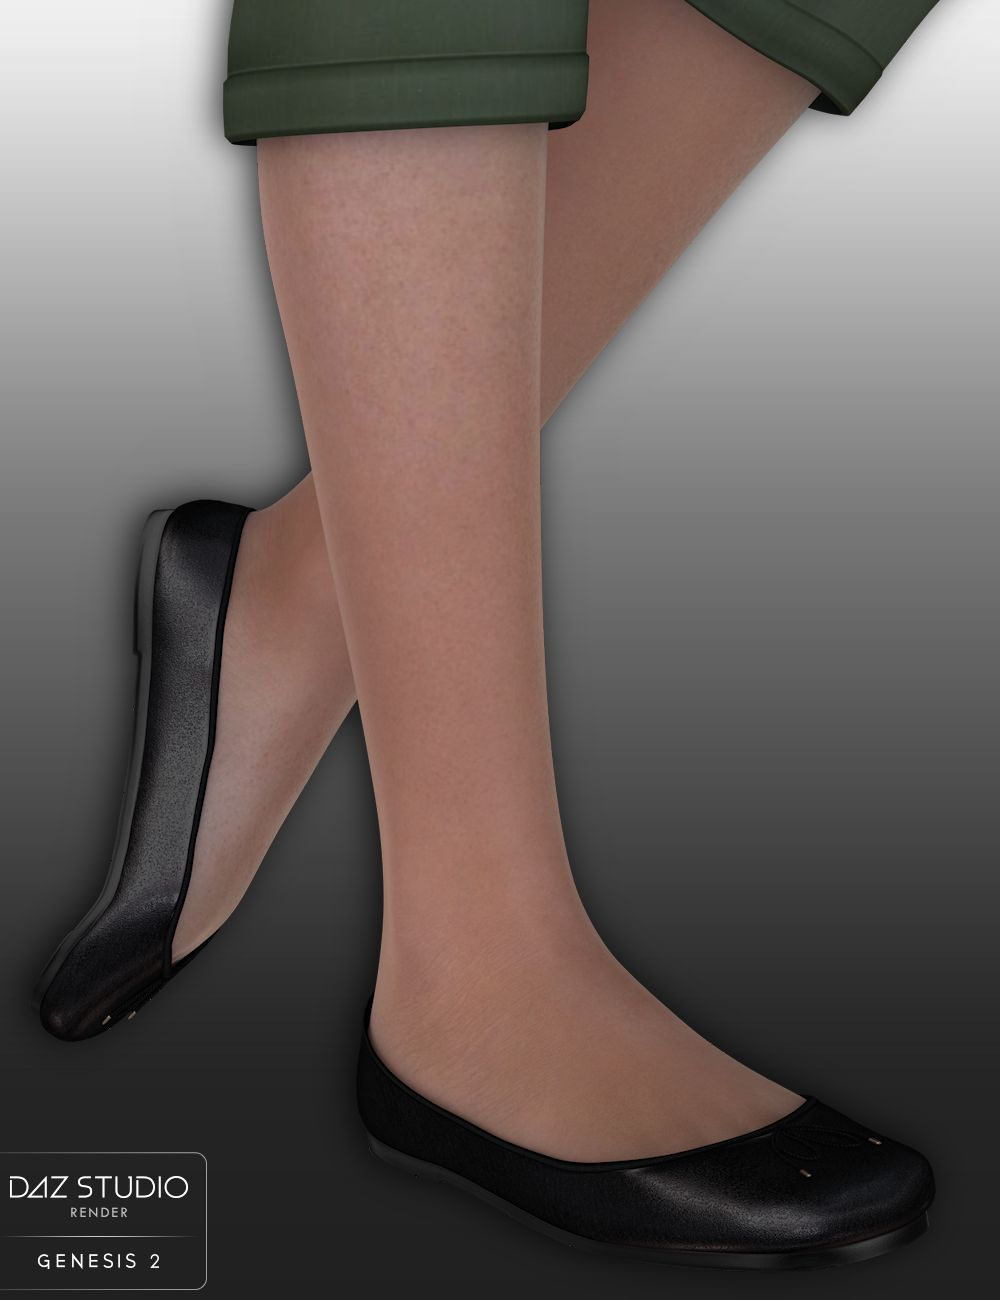 Classic Ballet Flats for Genesis 2 Females